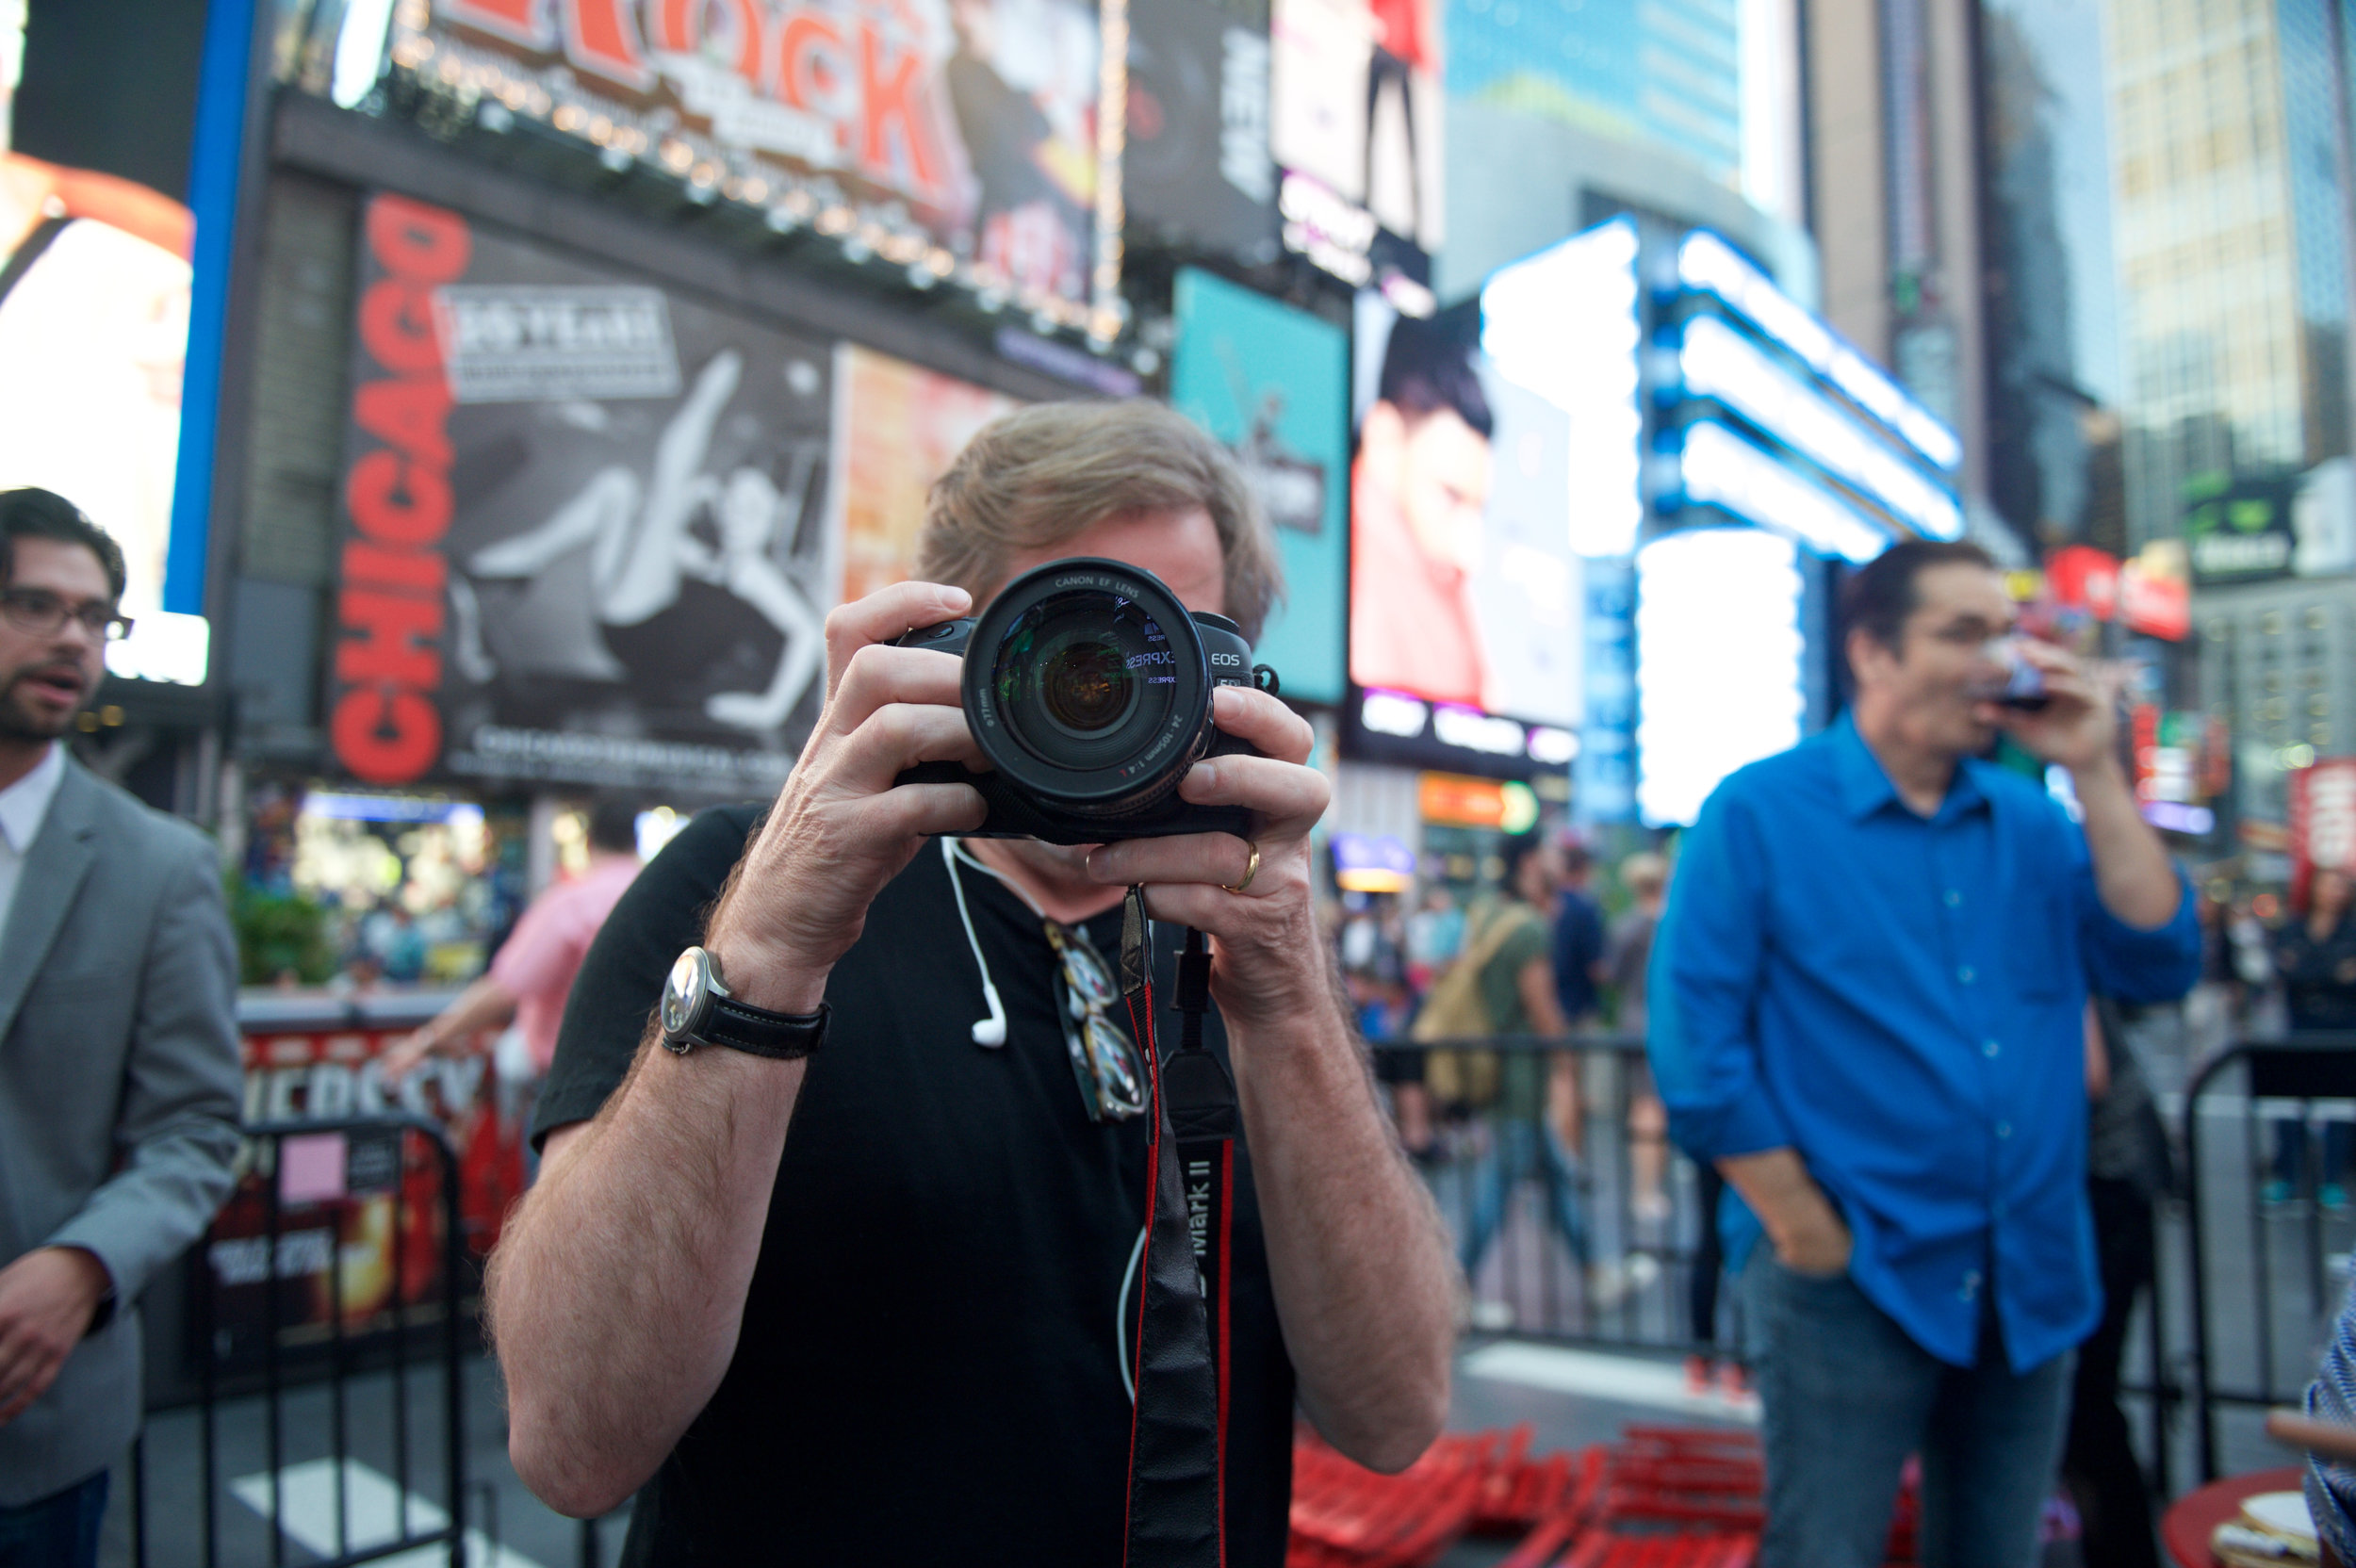 747 Club Times Sq 9-15-16 - Photo by, © 2016  Perry Bindelglass 11.jpg